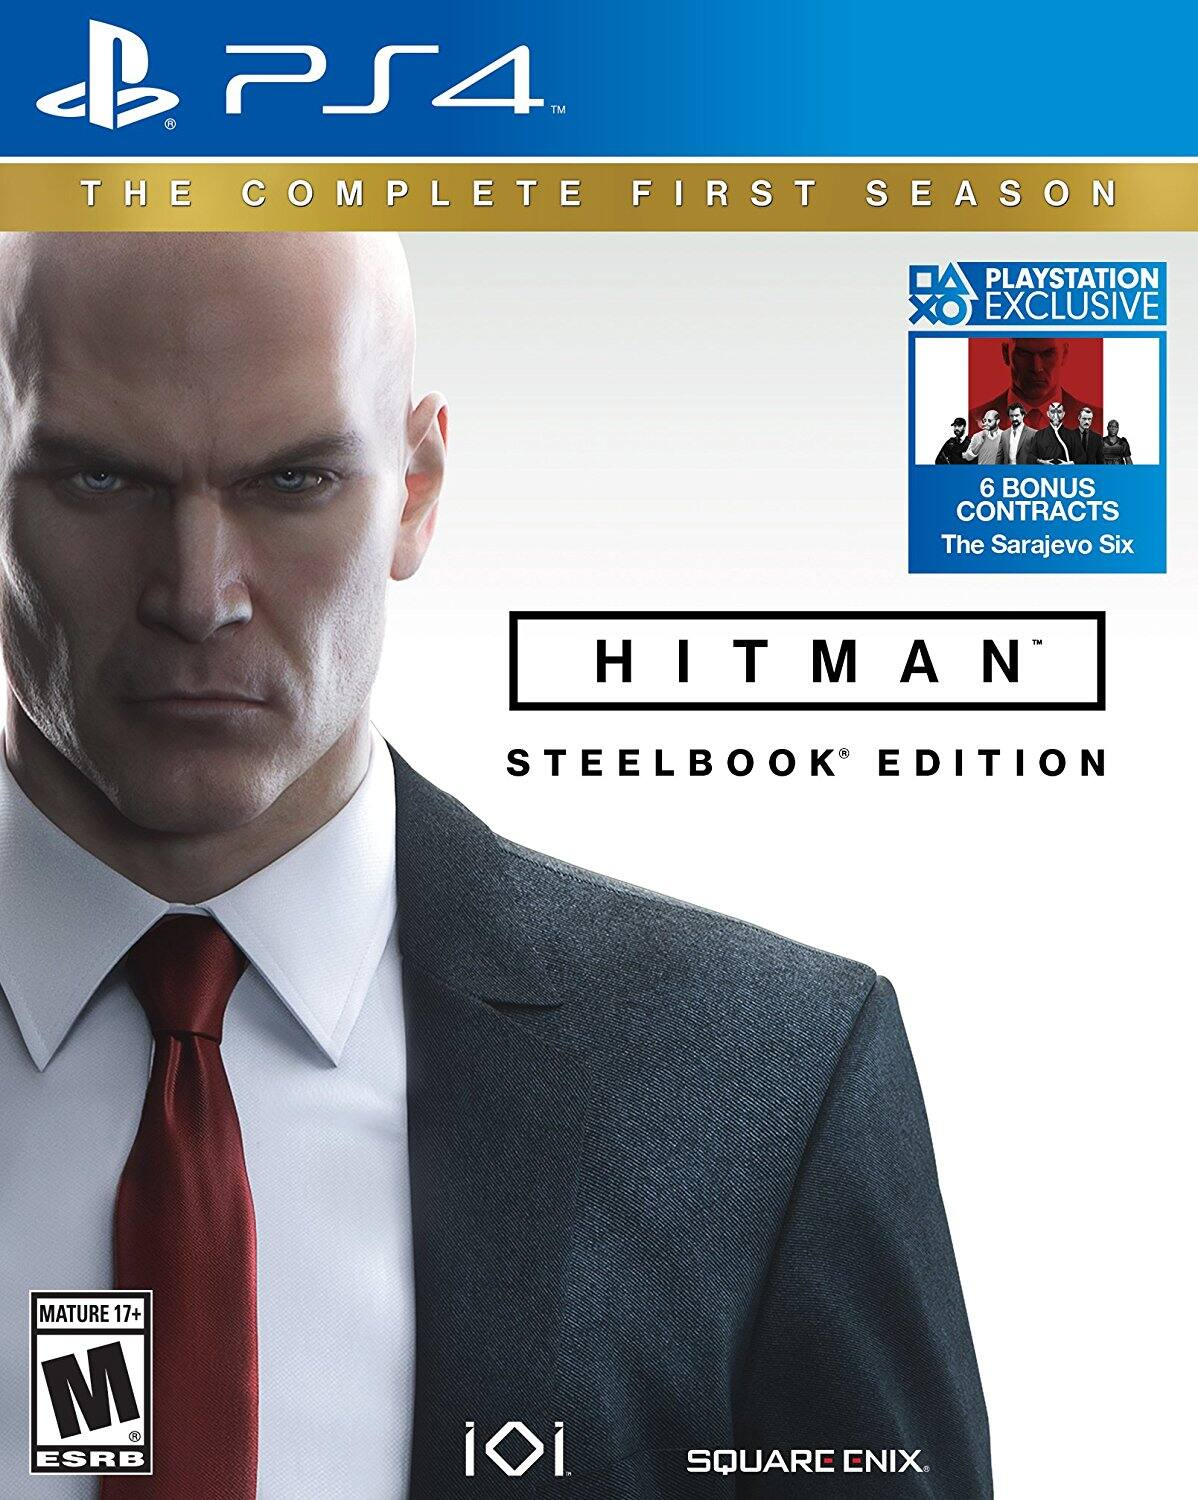 YMMV - Hitman: The Complete First Season for PS4 - In store only $18.49